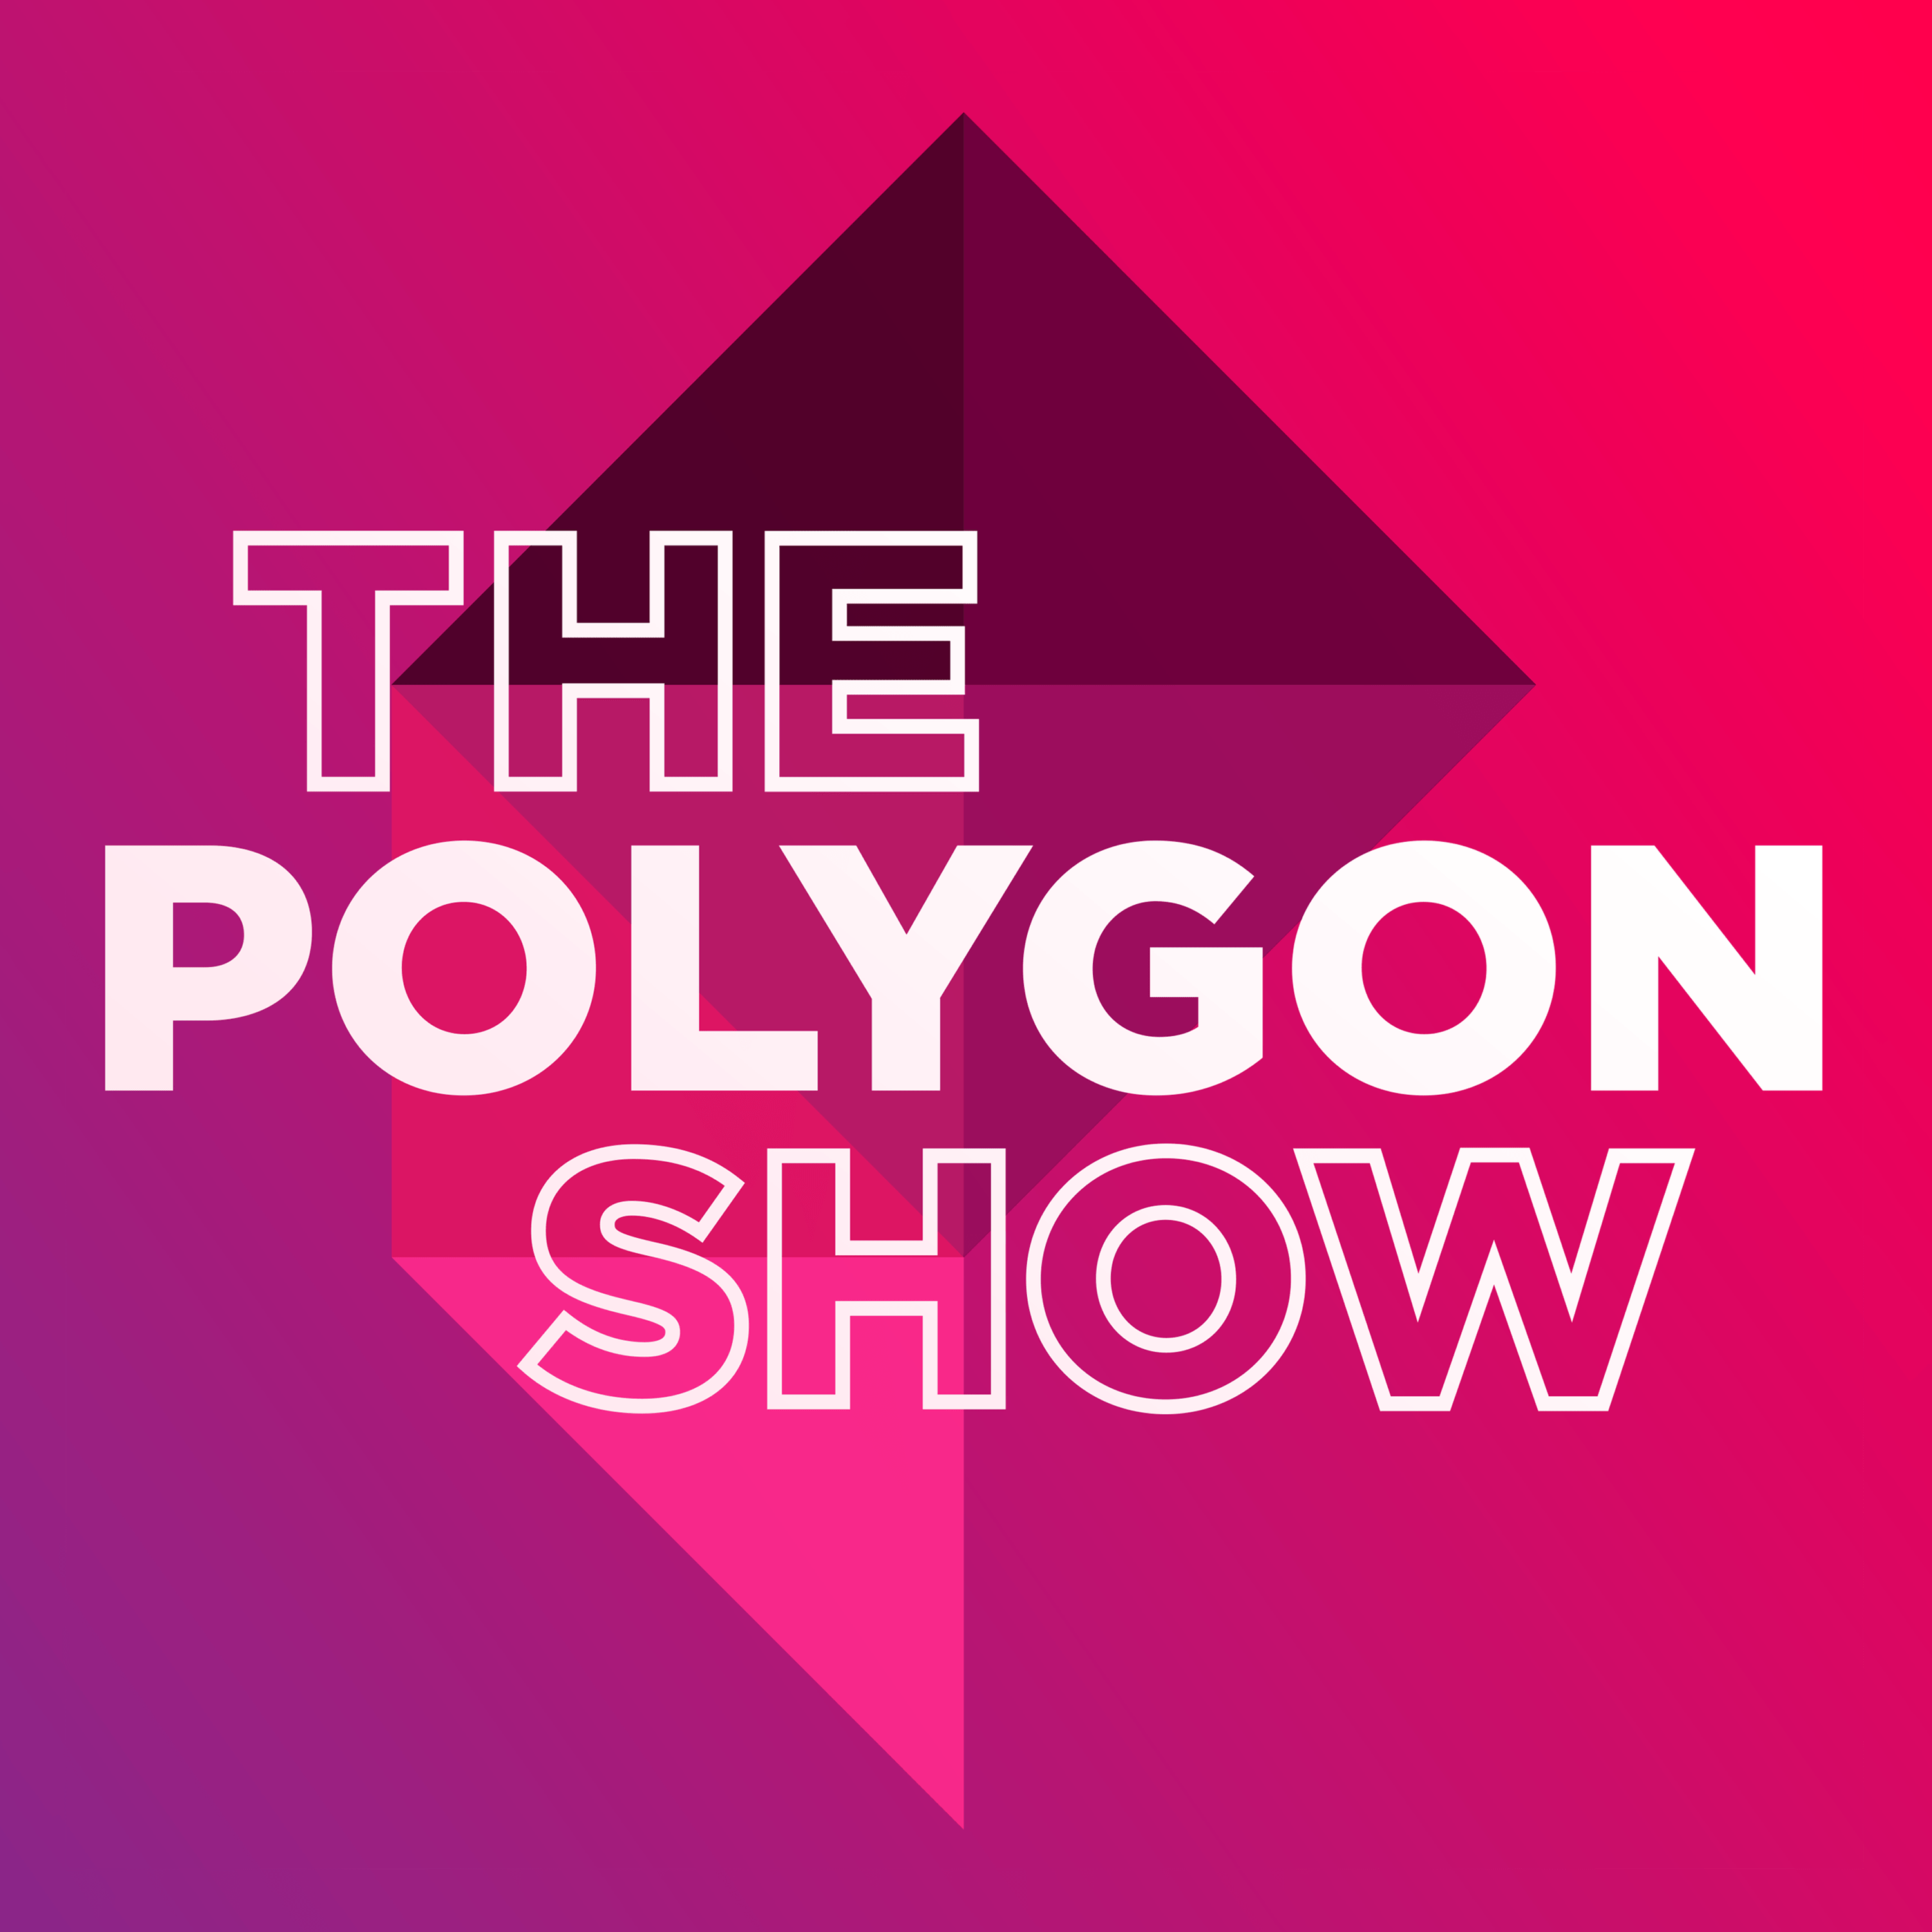 The Polygon show podcasts logo